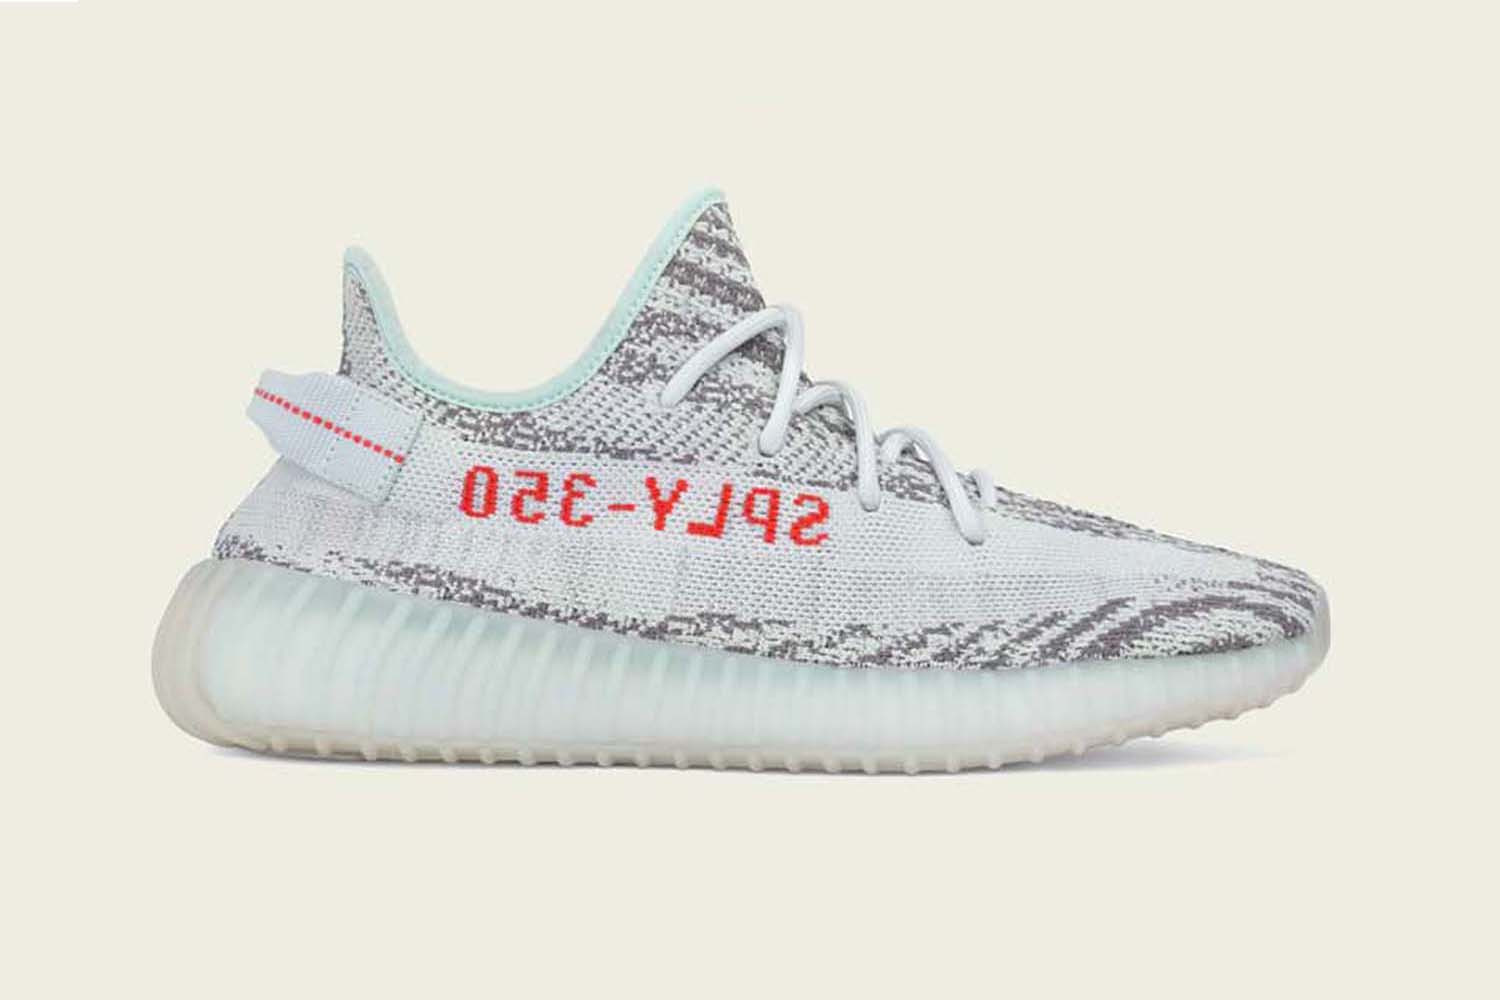 finest selection b3f79 d151a The Adidas YEEZY Boost 350 V2 returns with a Blue Tint shade, in time for  the upcoming festive season. Scheduled to arrive on December 16th, ...